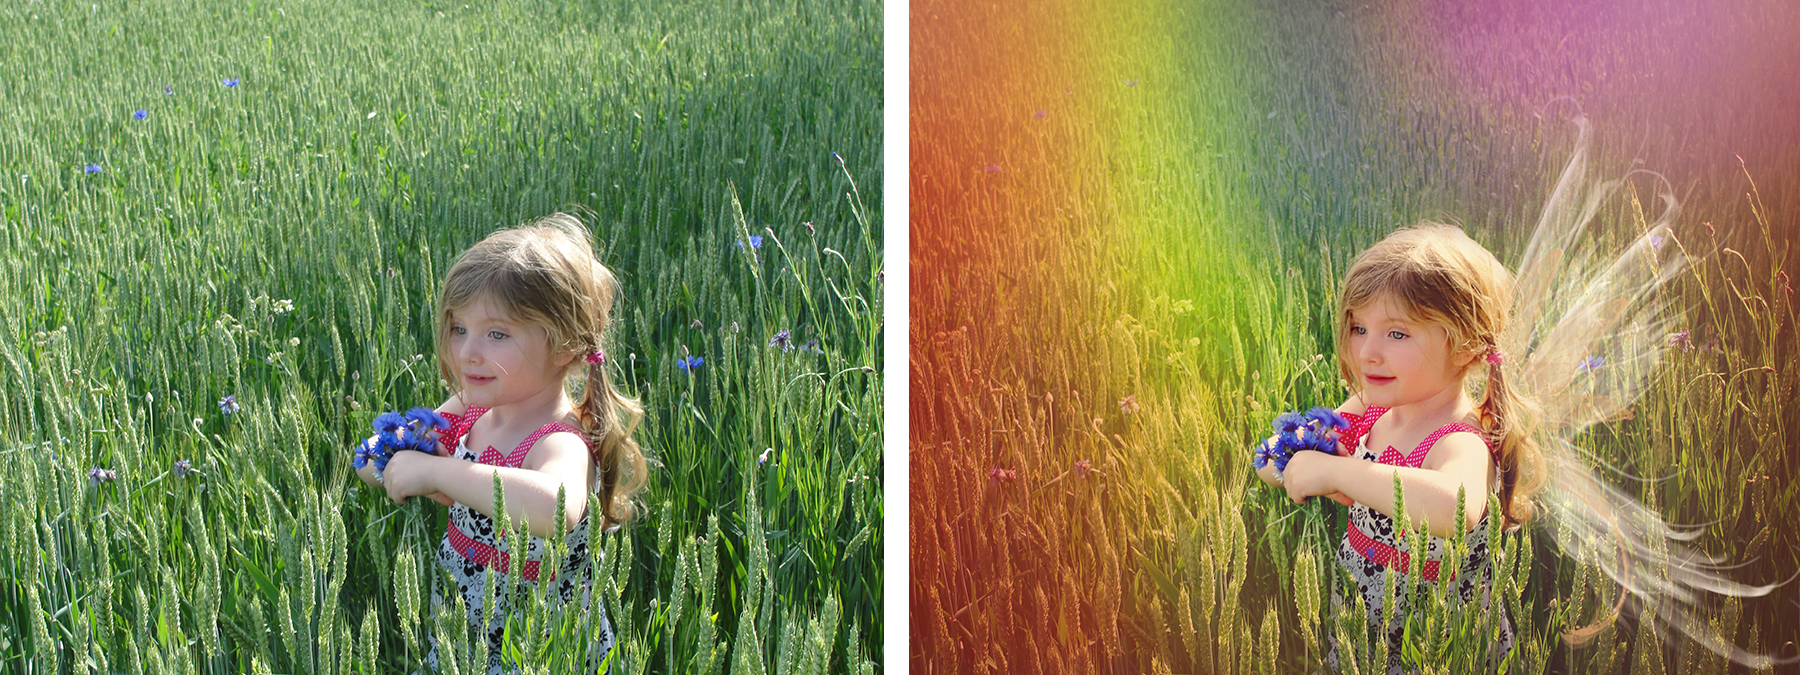 Girl with wings in rainbow field